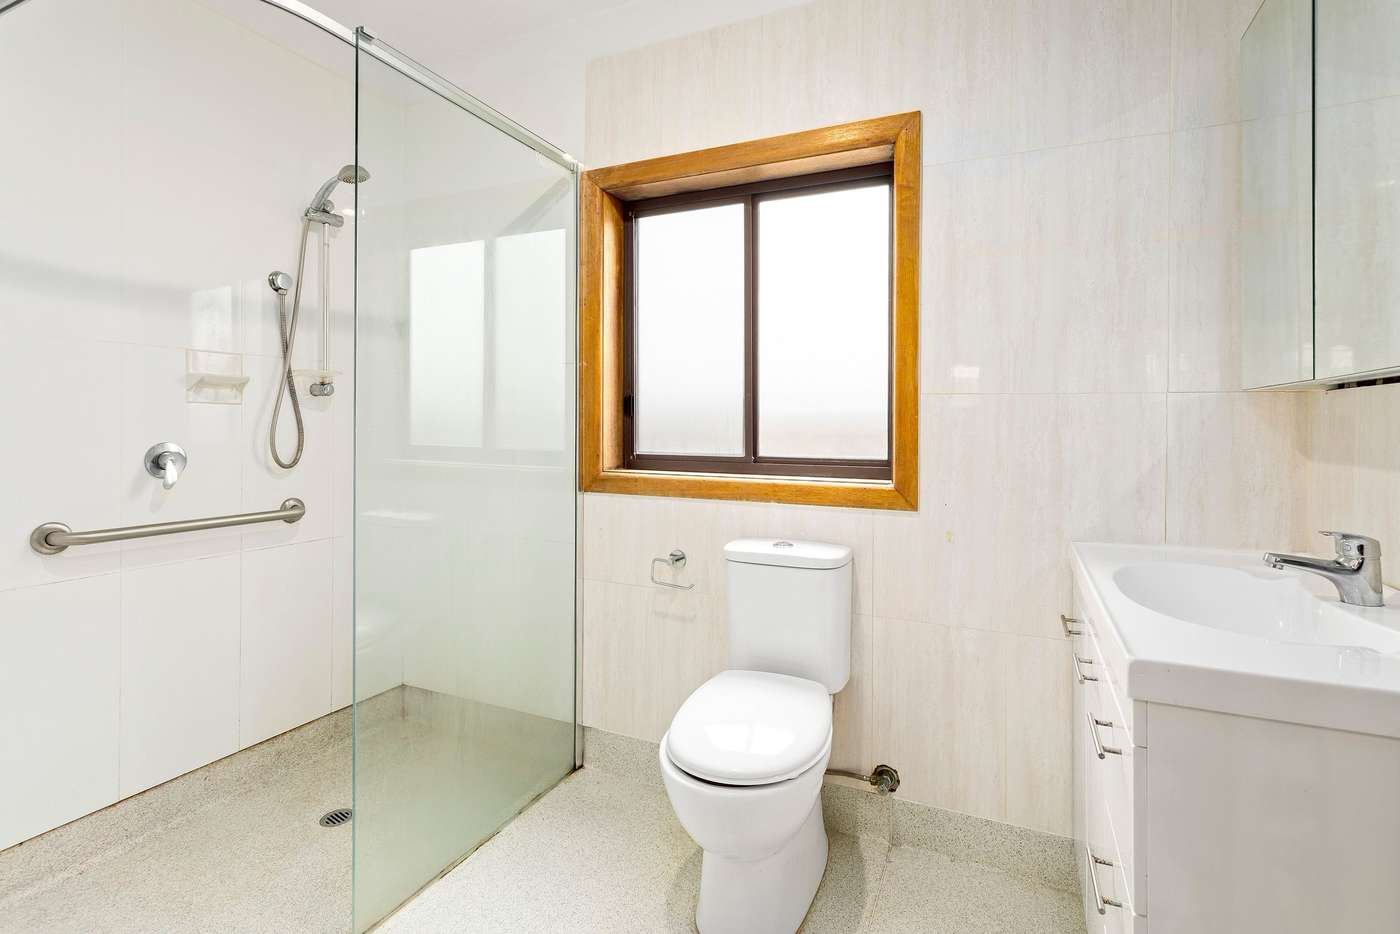 Sixth view of Homely house listing, 87 Roseberry Street, Ascot Vale VIC 3032